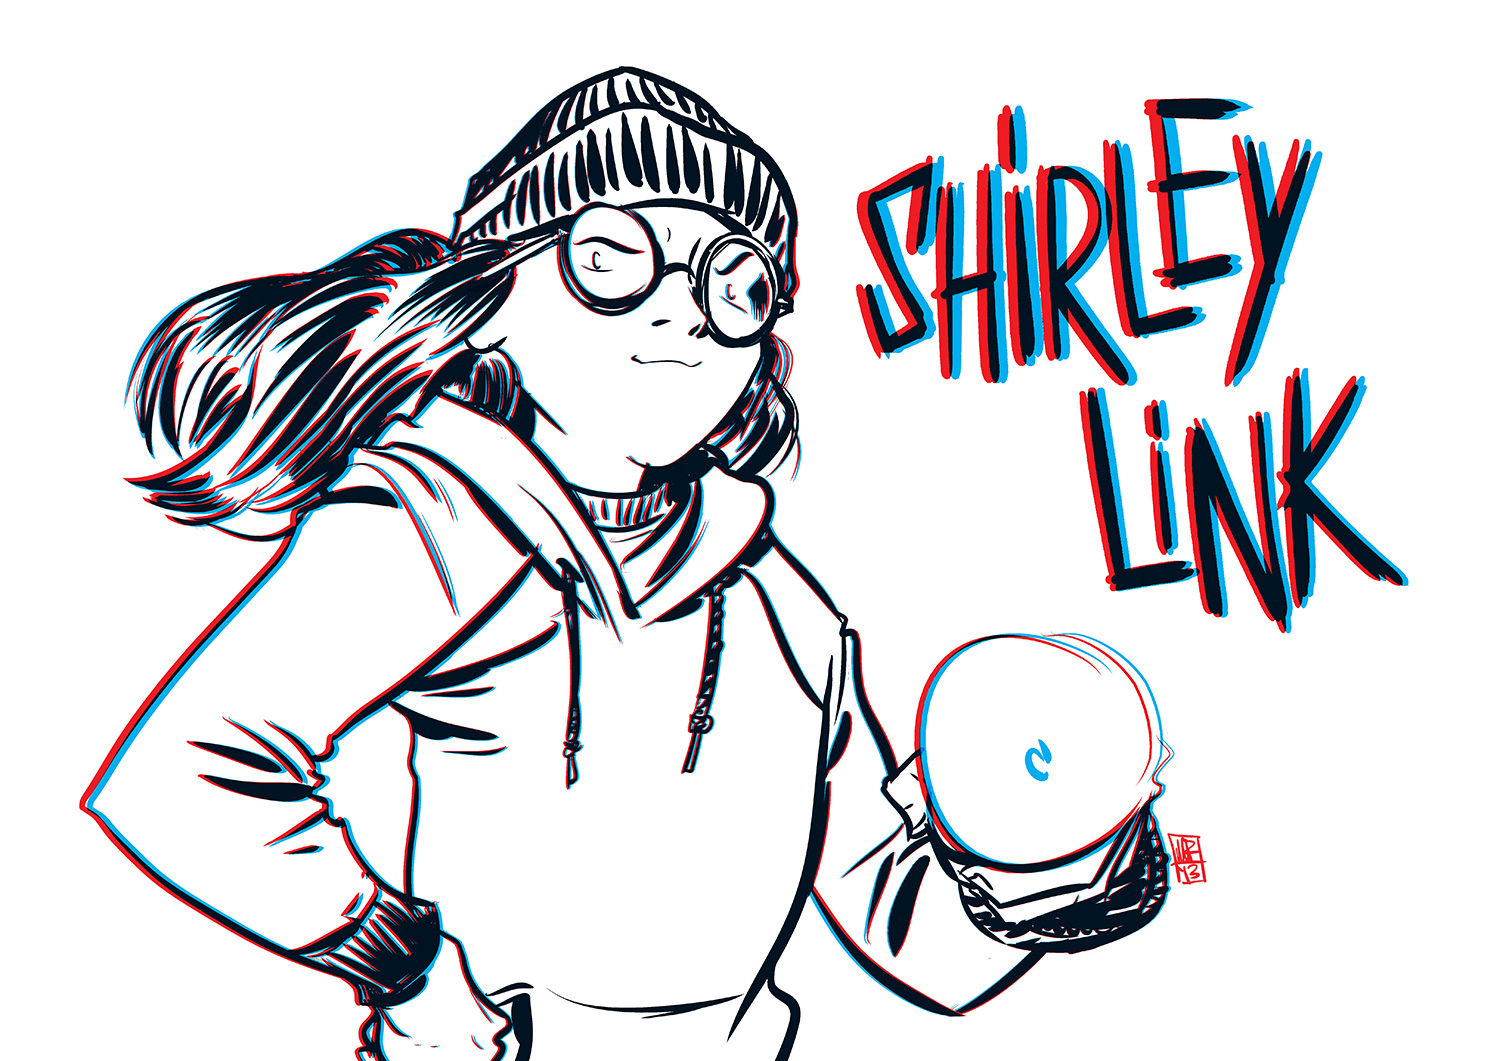 Shirley Link & The Ghost of Christmas Presents